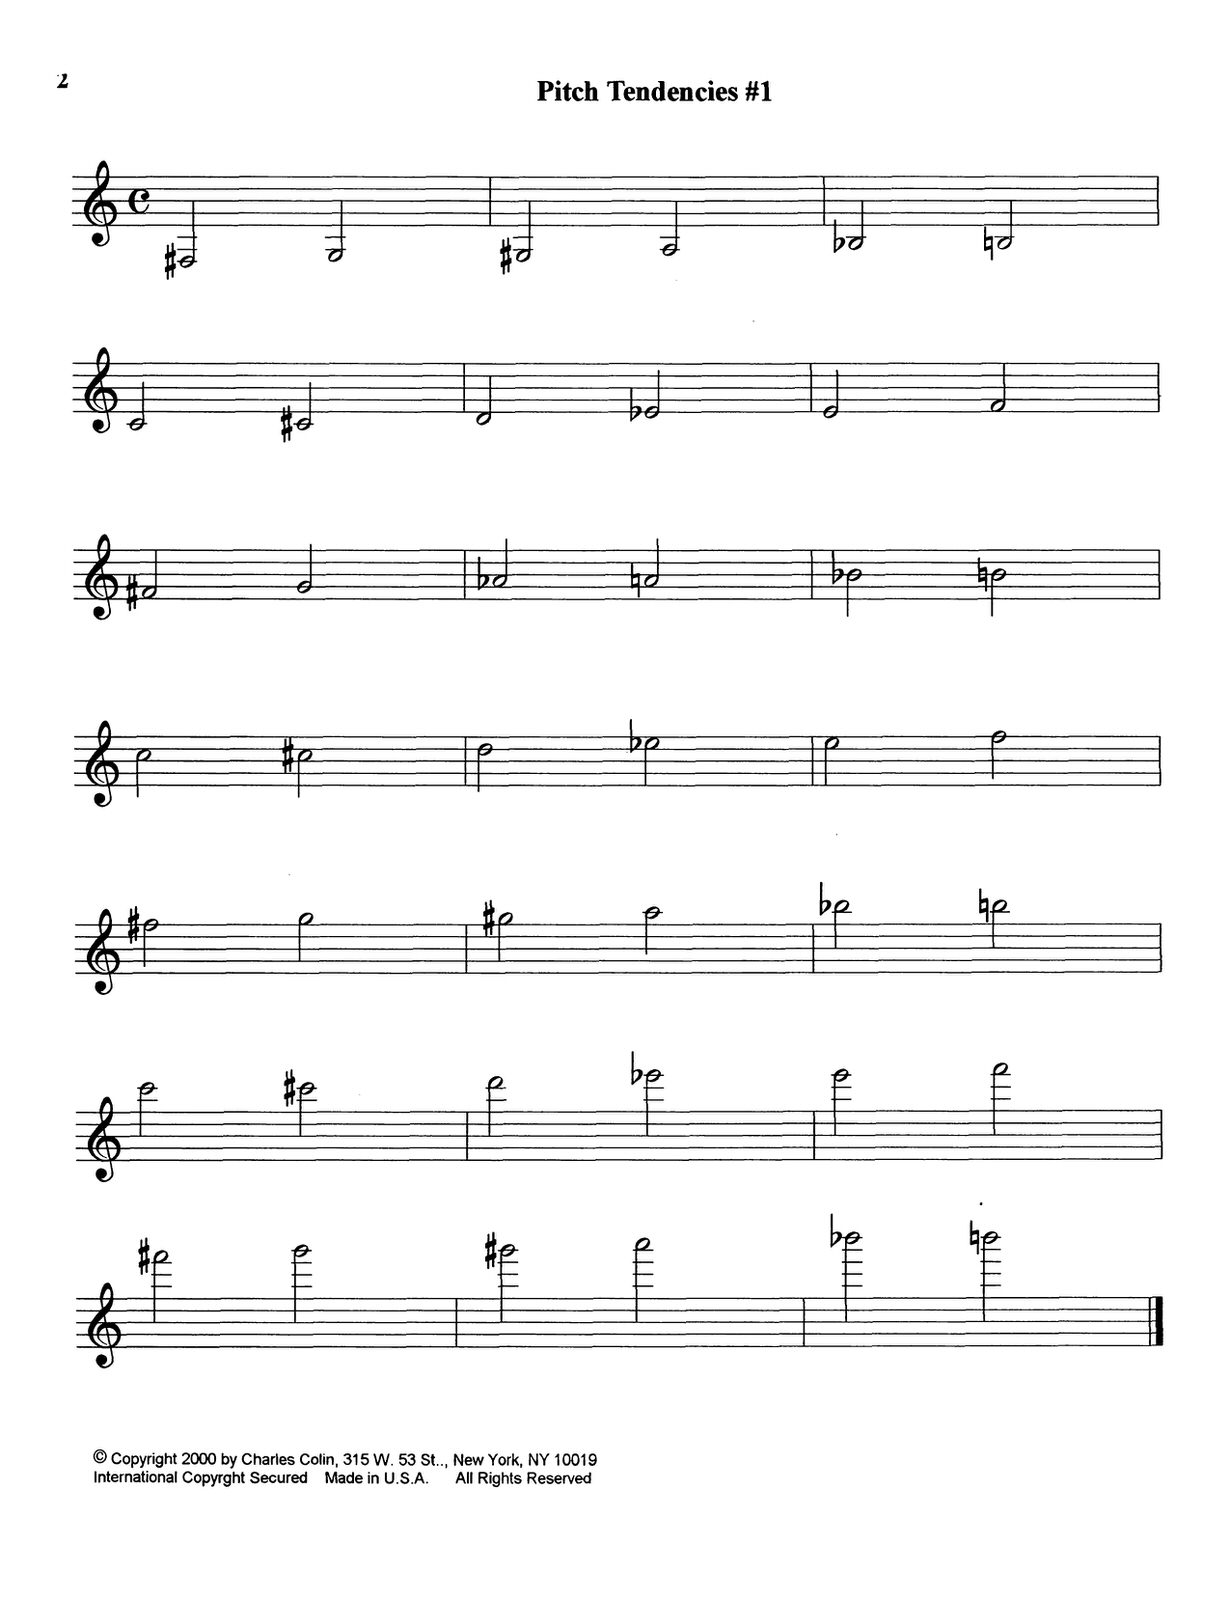 Ponzo, Pitch Tendency Exercises for Trumpet_000006